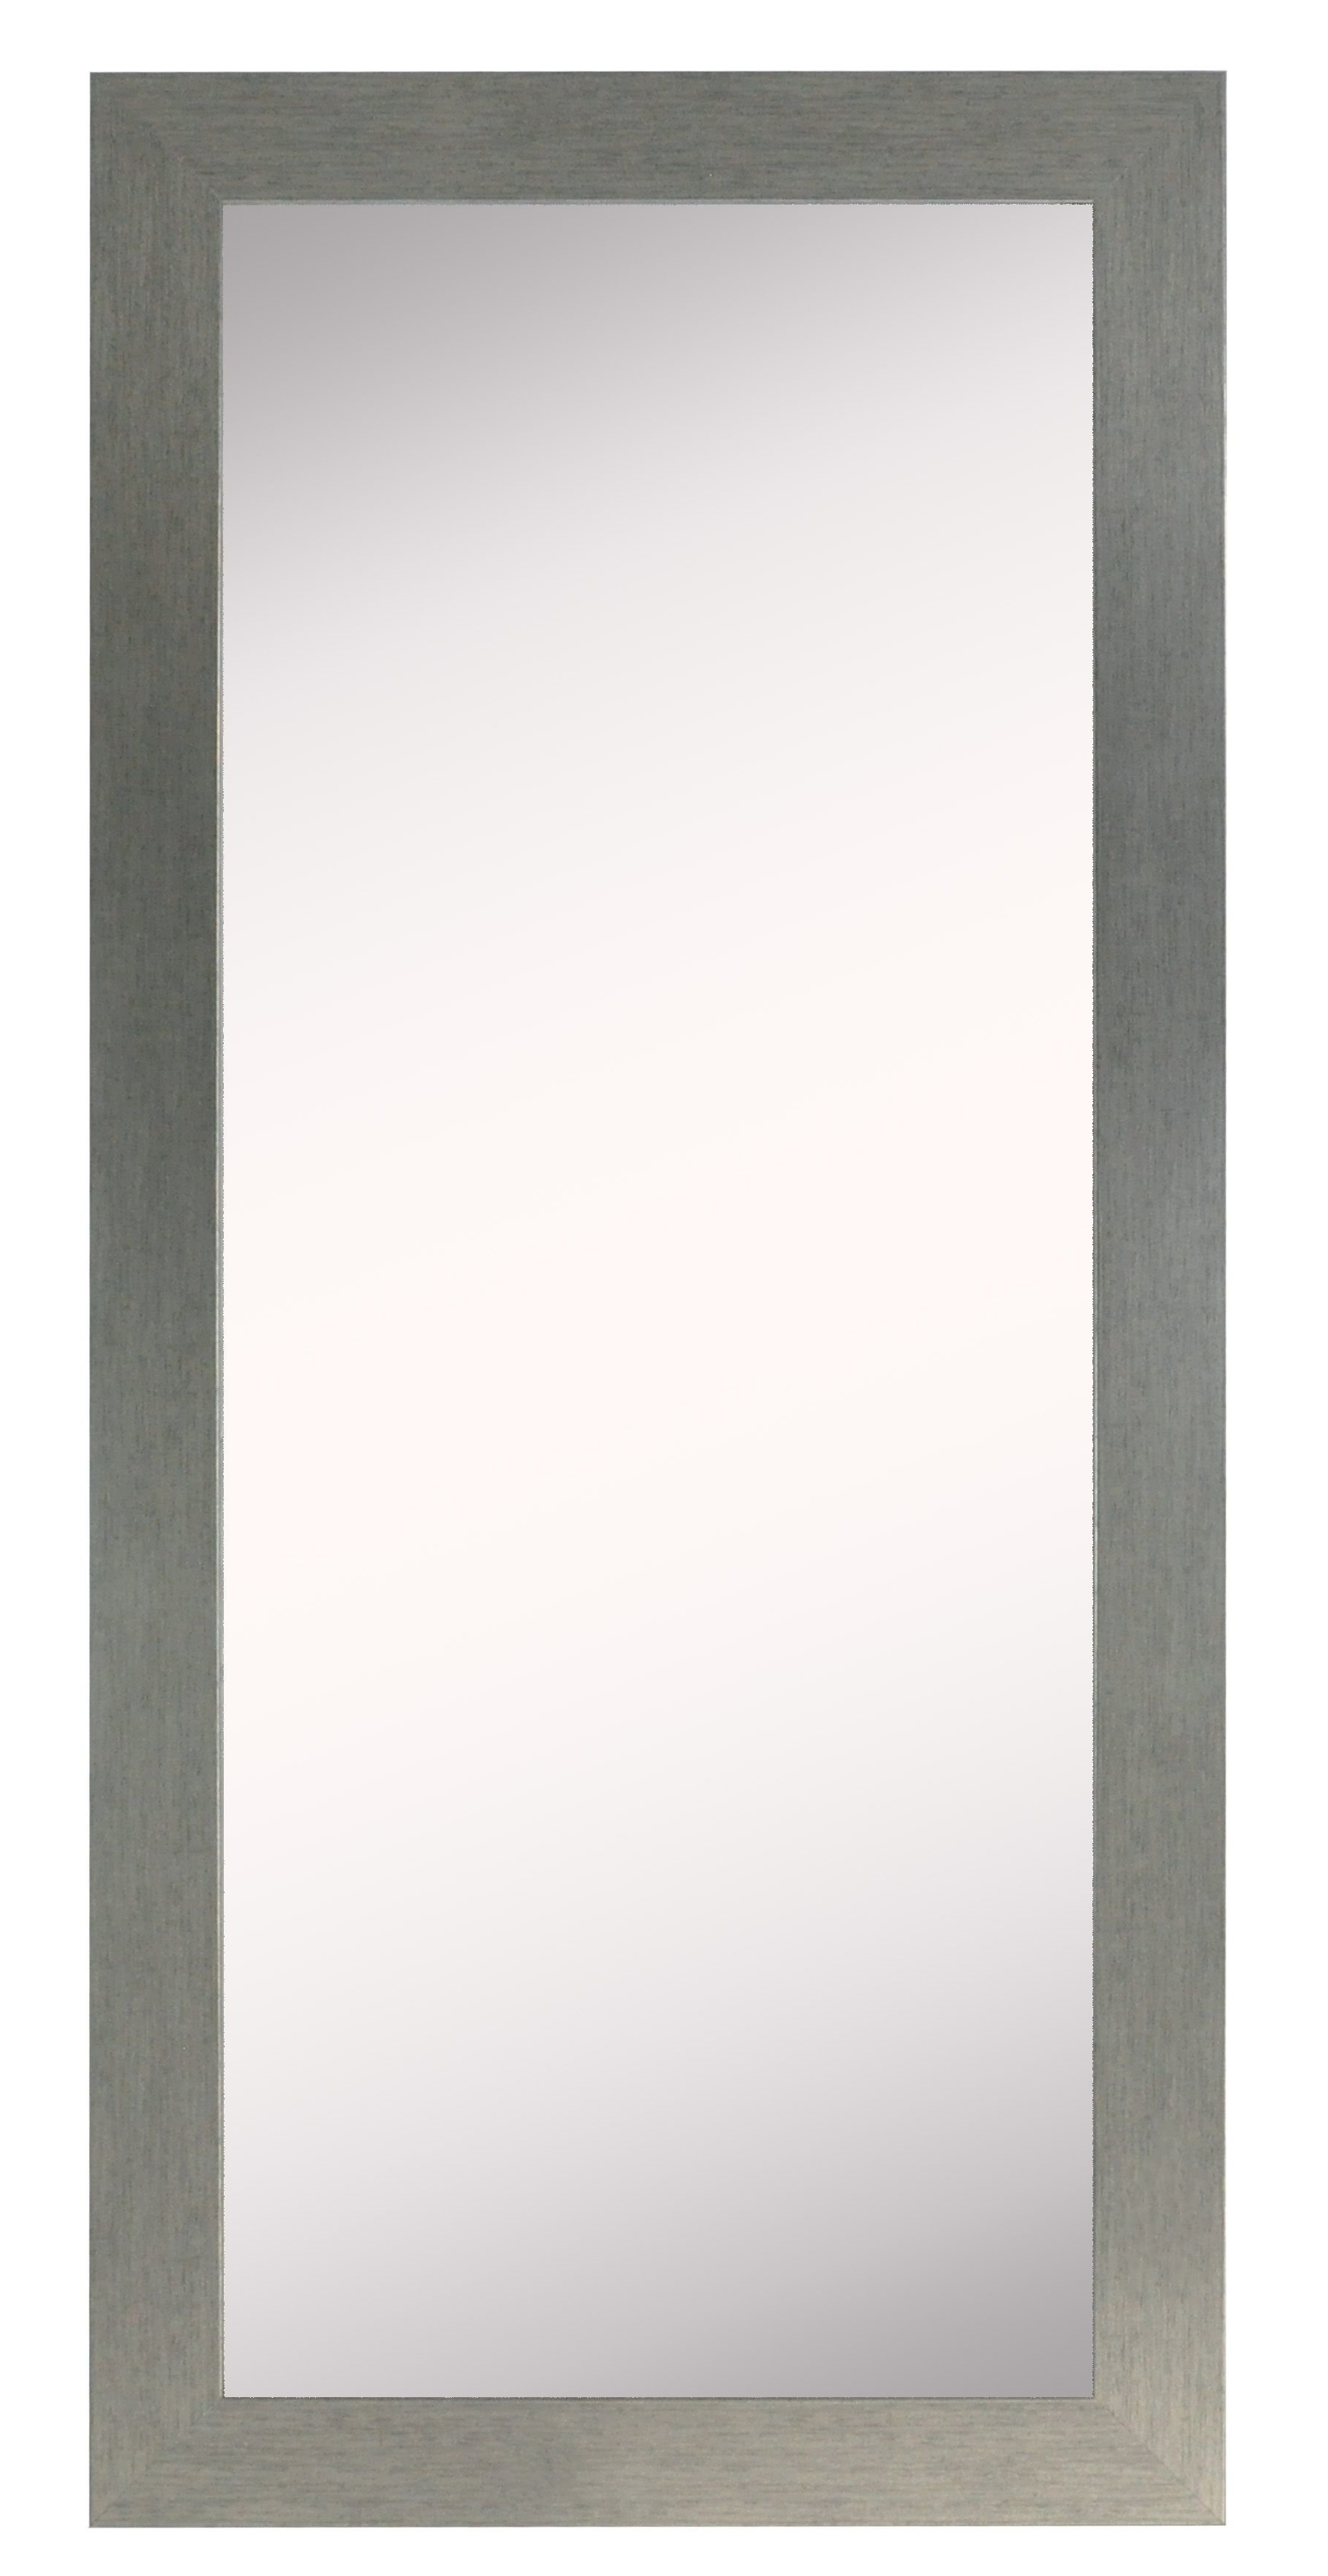 Allmodern With Rectangle Ornate Geometric Wall Mirrors (View 17 of 20)